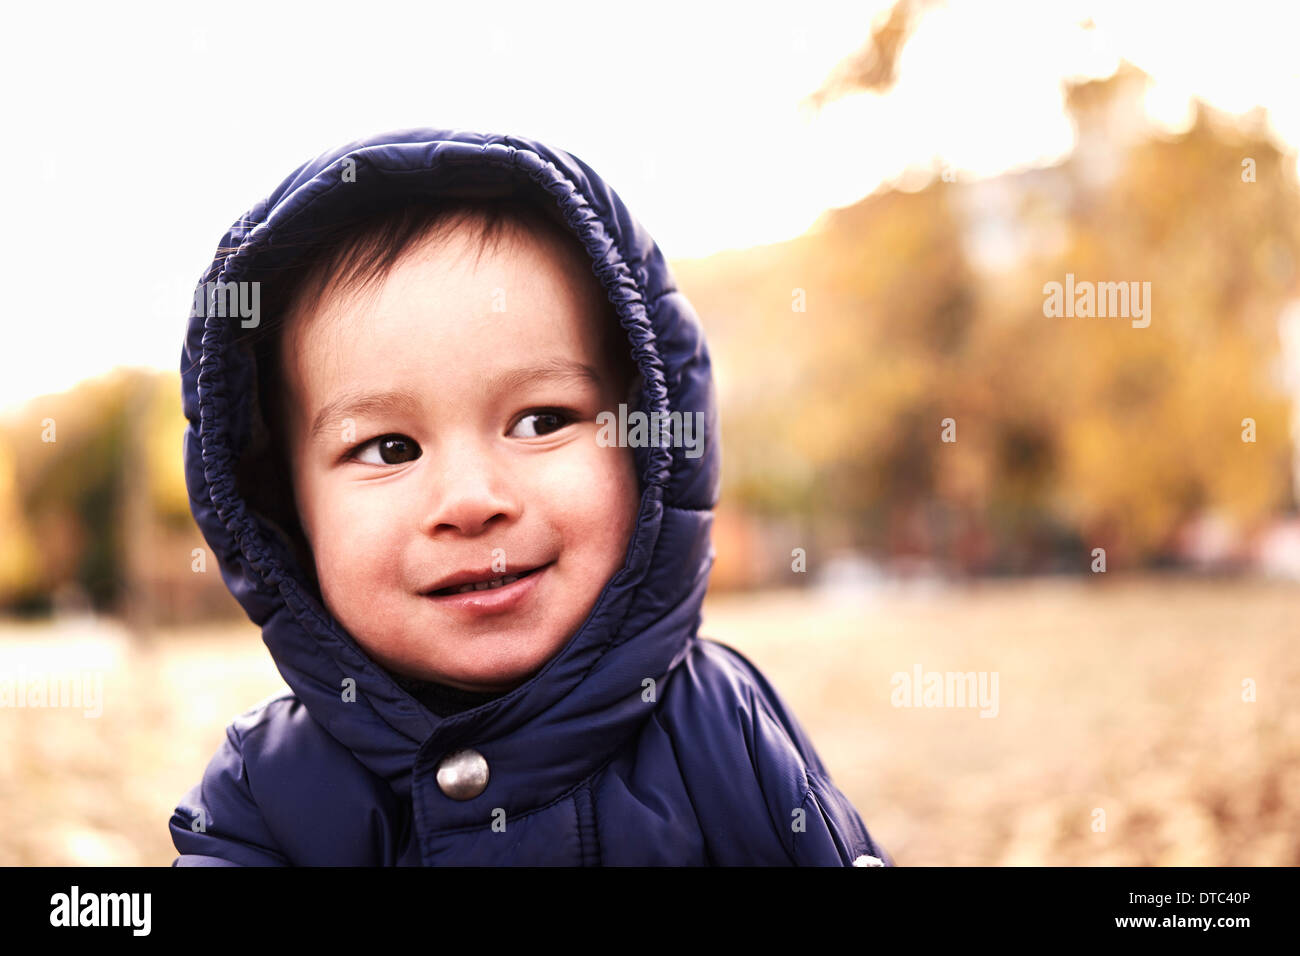 Portrait of baby boy in hooded anorak - Stock Image